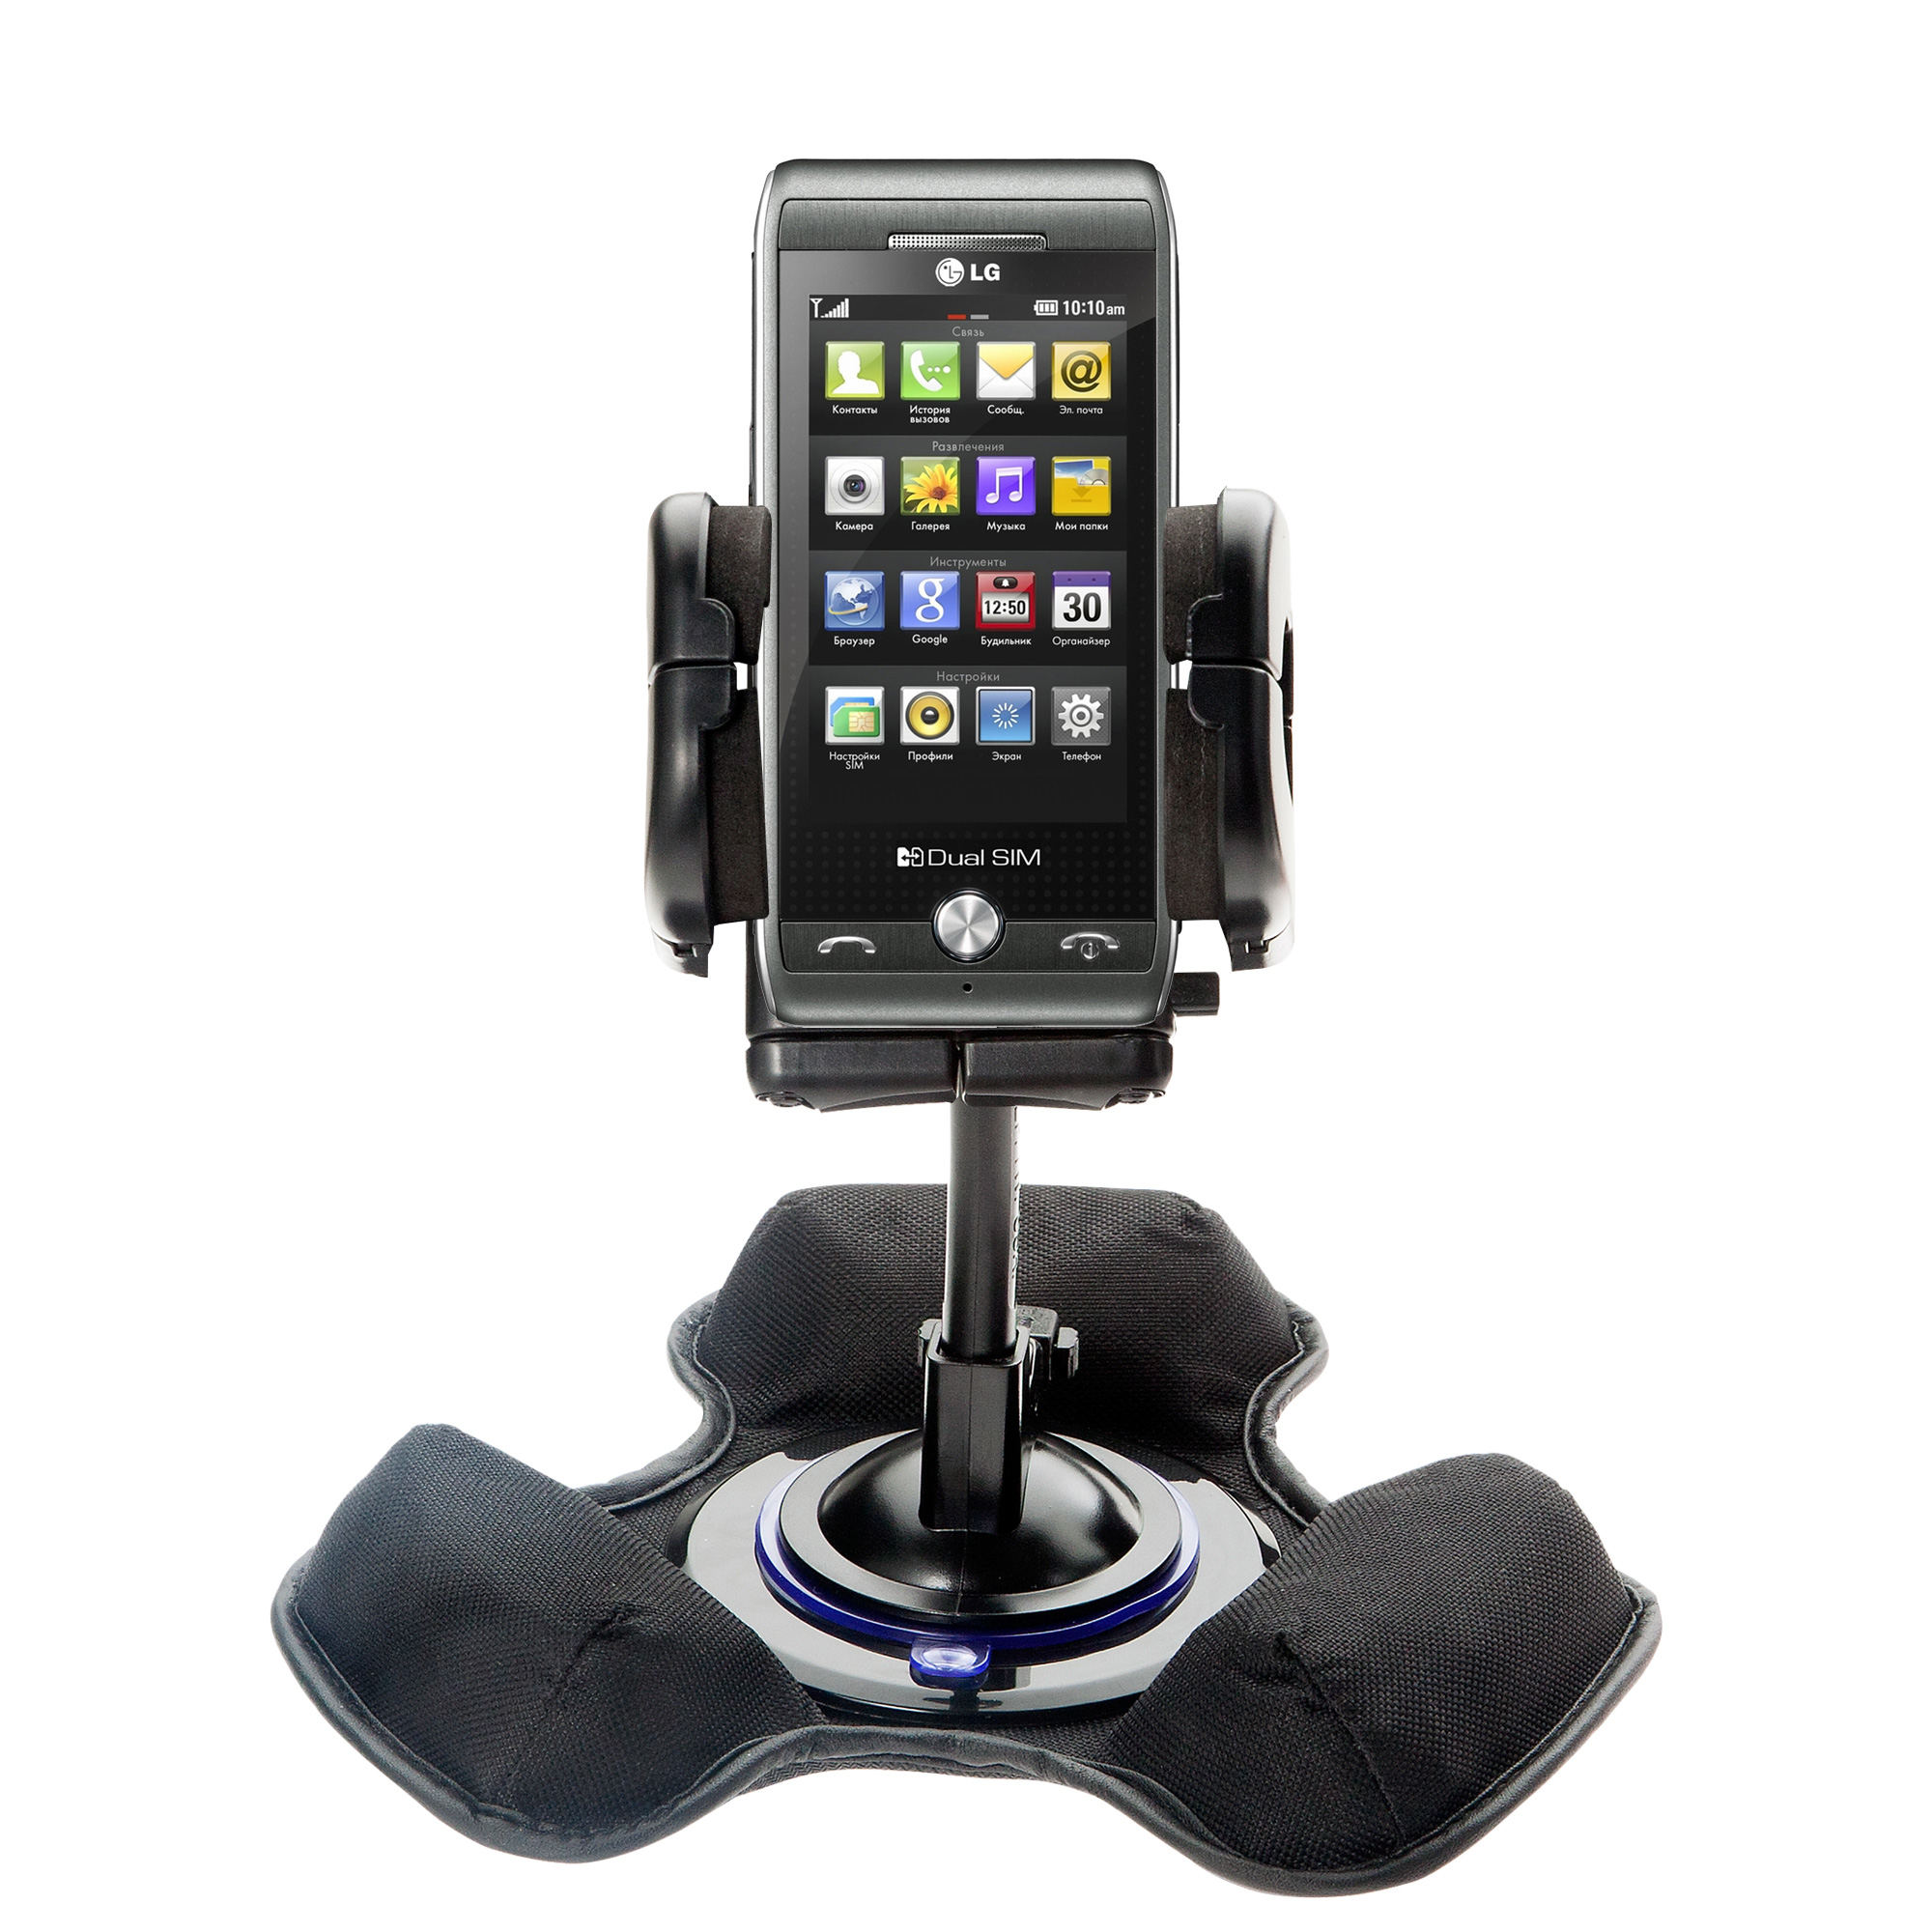 Dash and Windshield Holder compatible with the LG GX500